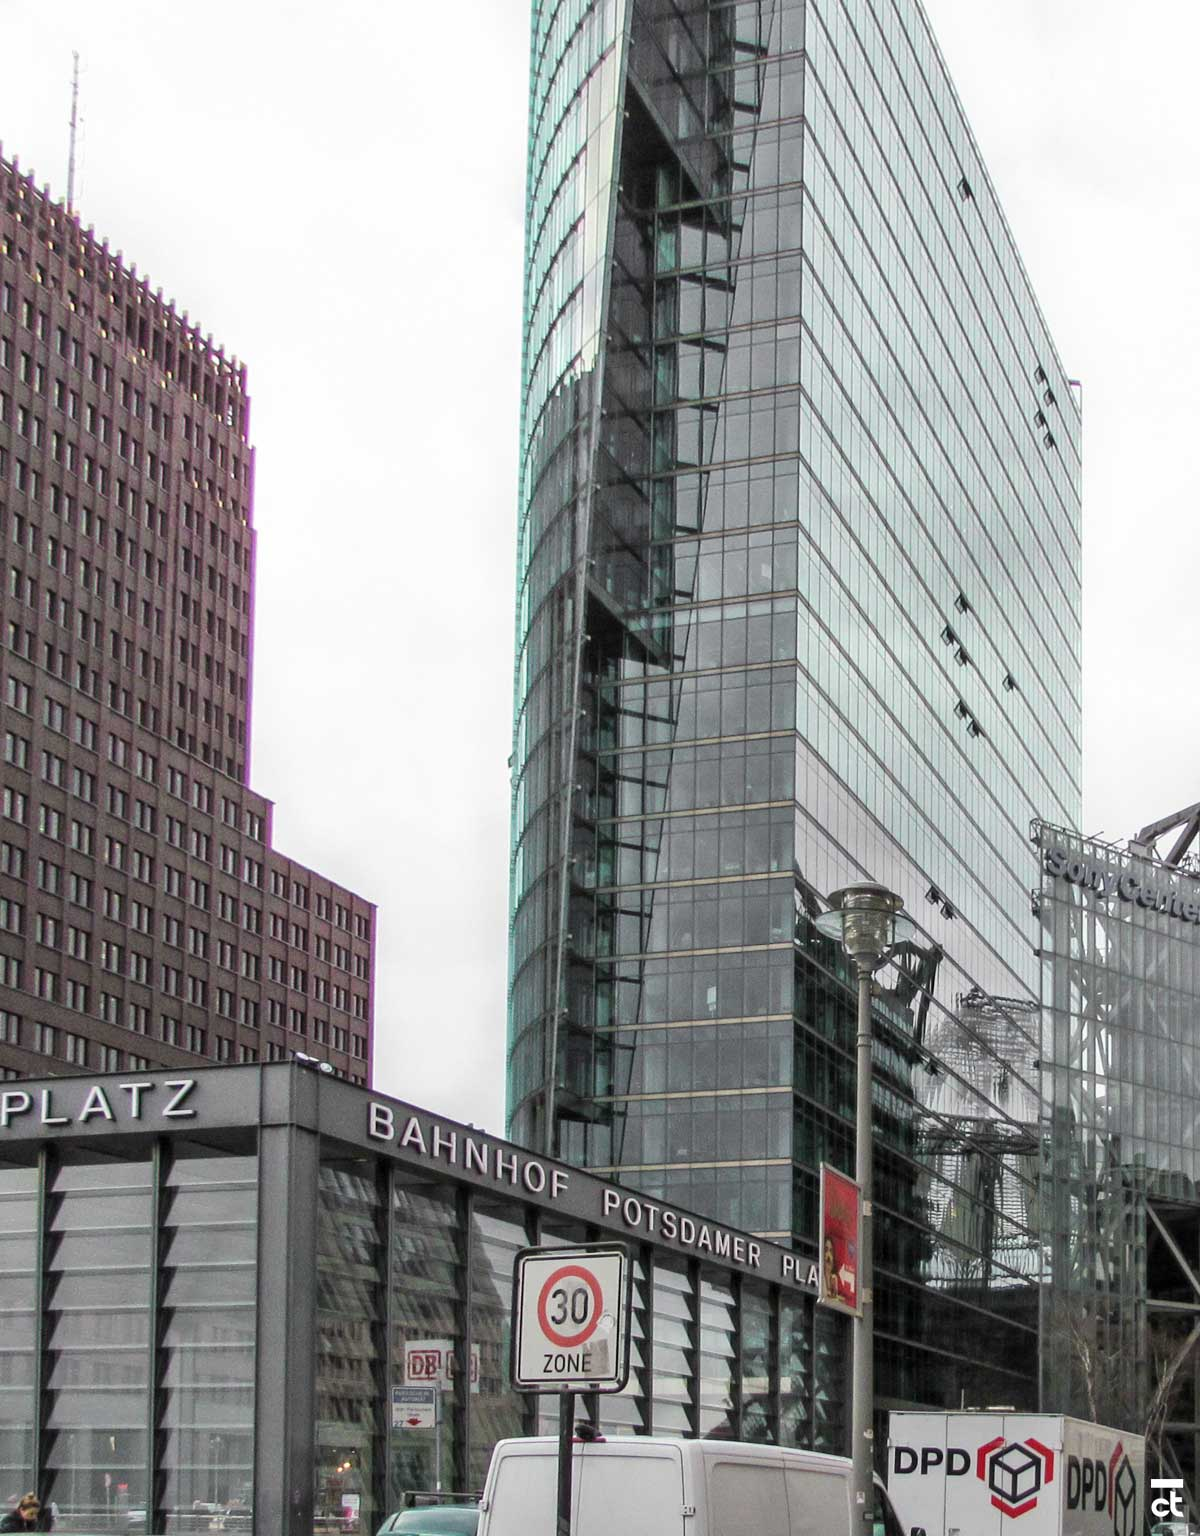 POTSDAMER PLATZ - BERLIN TRAVEL GUIDE: 55 Things to Do in Berlin, Germany